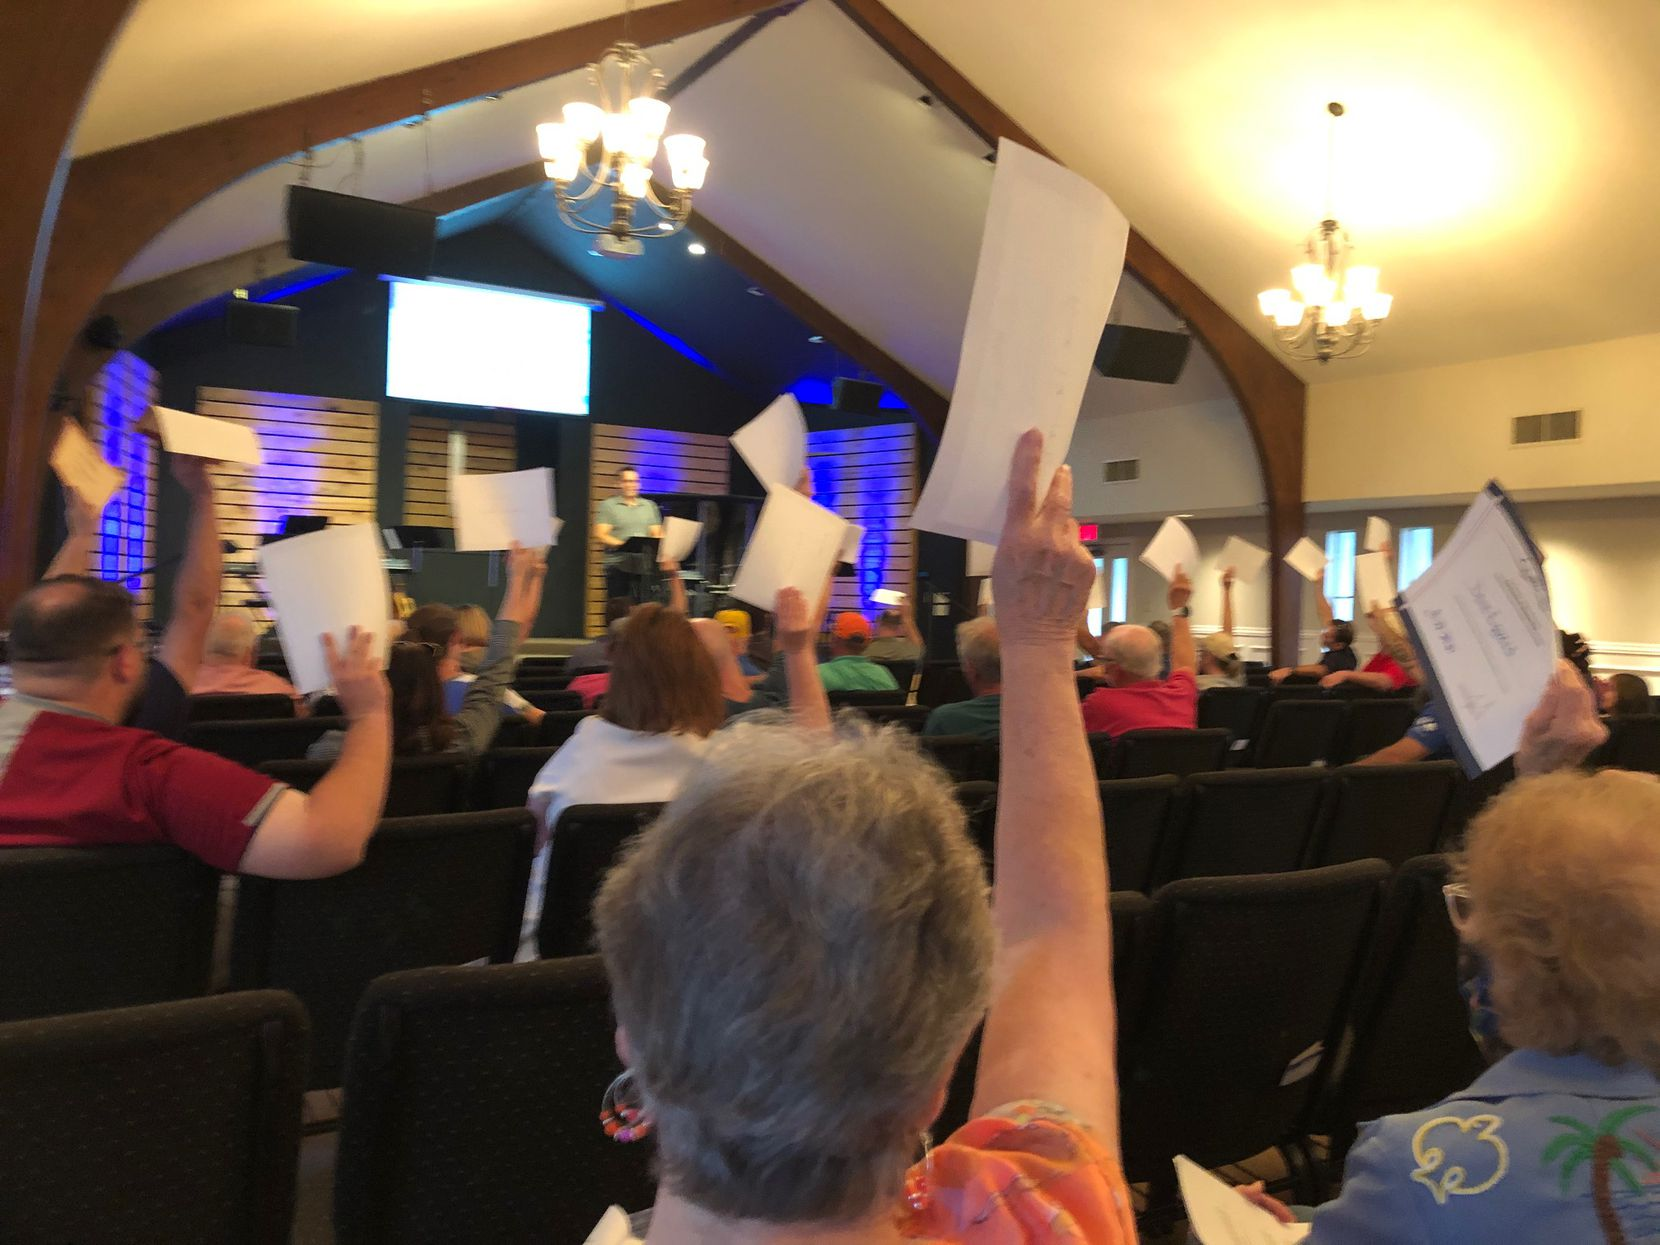 Members of Lonesome Dove Baptist Church assumed control of the cemetery association at a September 2021 annual meeting. To vote, you needed a voting certificate which was raised for each vote to show you qualified.